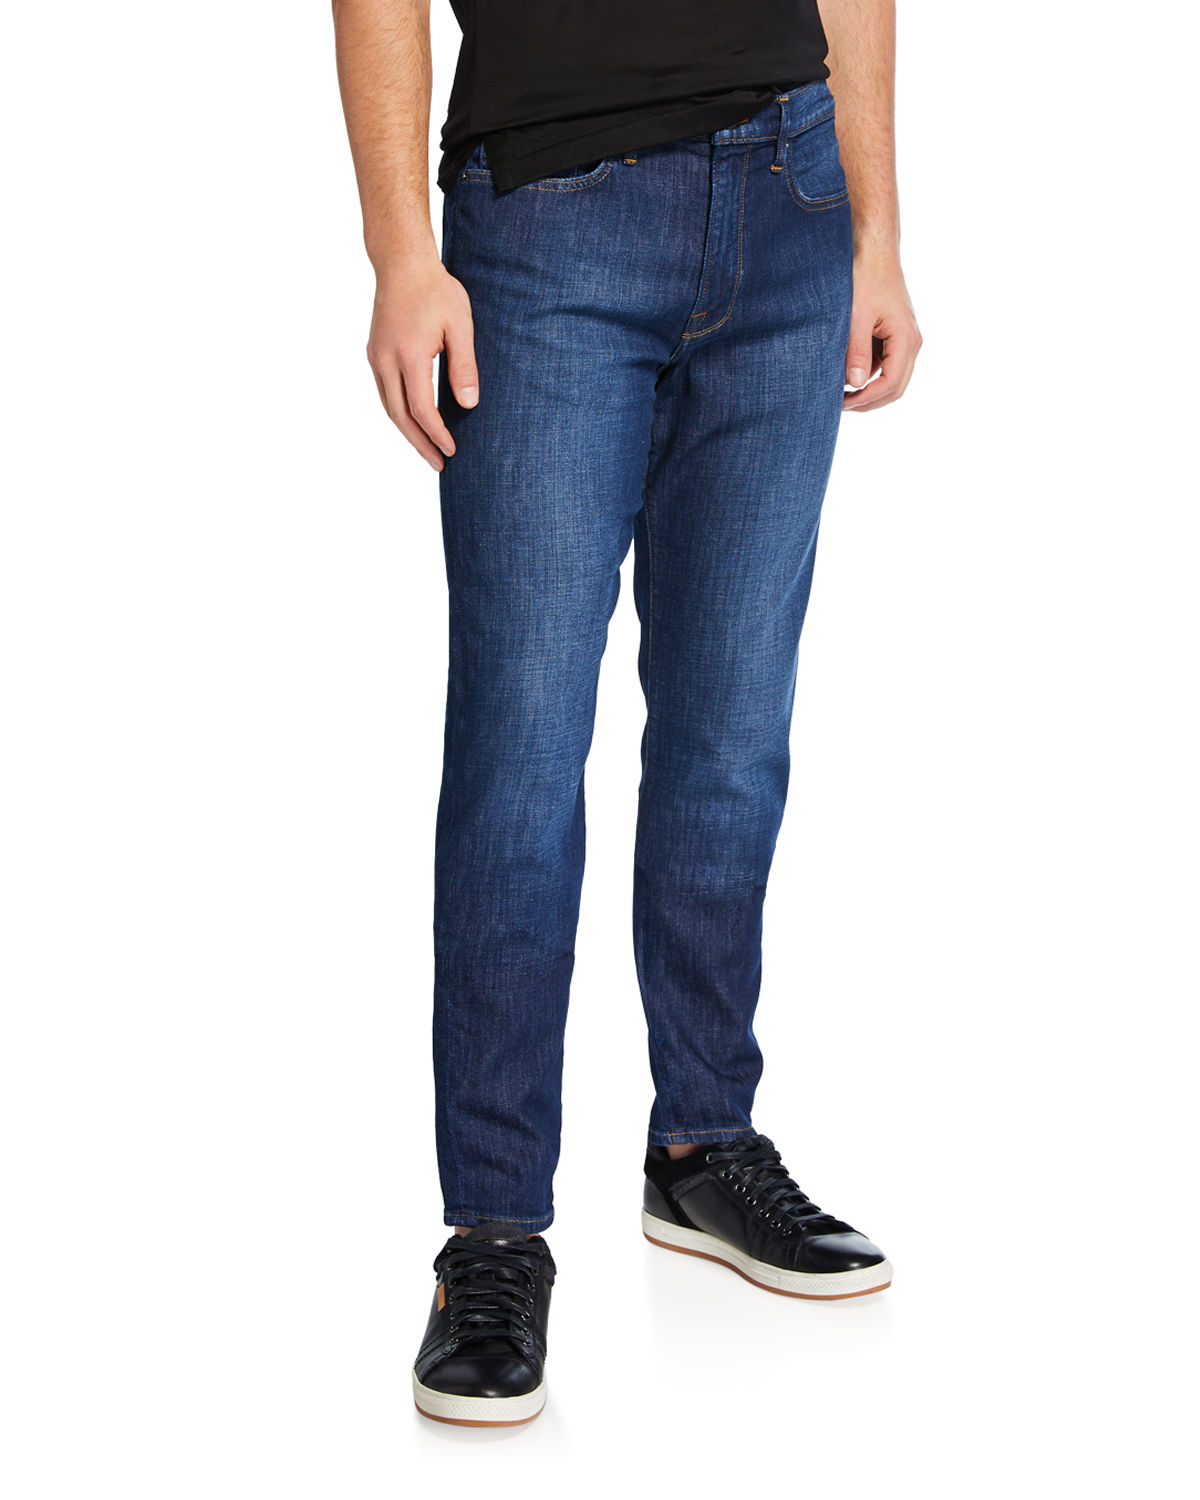 Frame Jeans MEN'S L'HOMME ATHLETIC JEANS